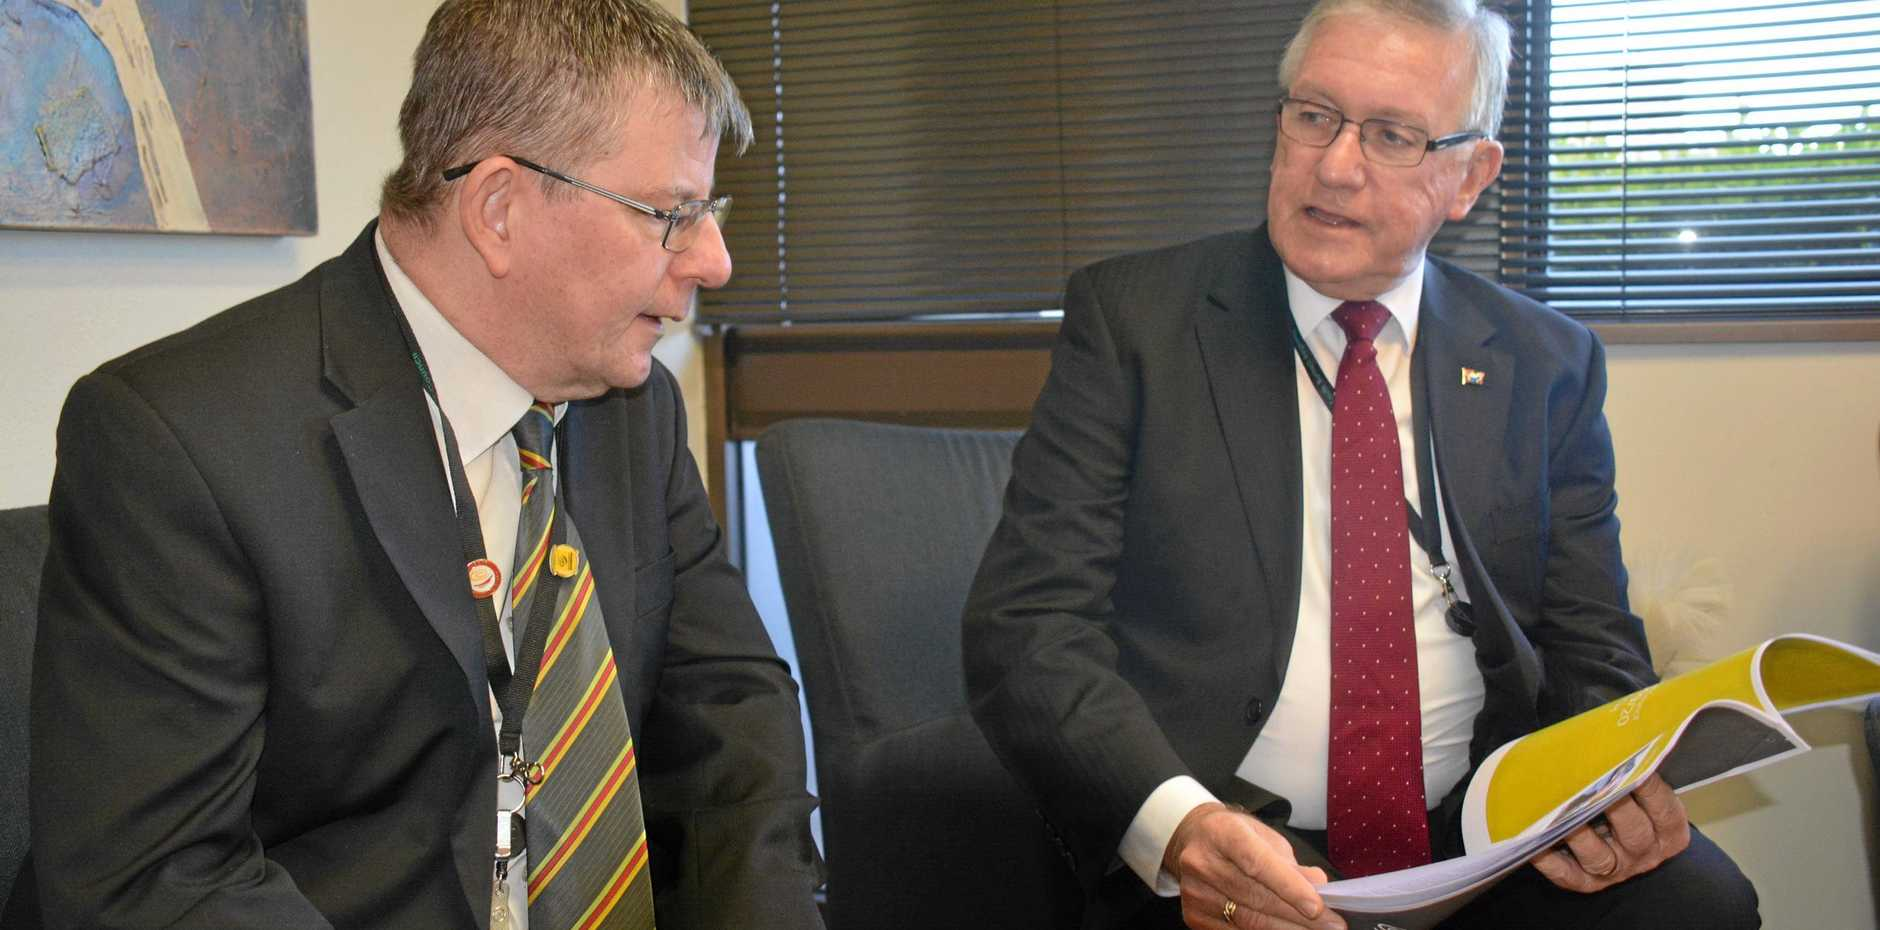 BUDGET: South Burnett Regional Council CEO Mark Pitt and Mayor Keith Campbell look over the 2019/20 budget.